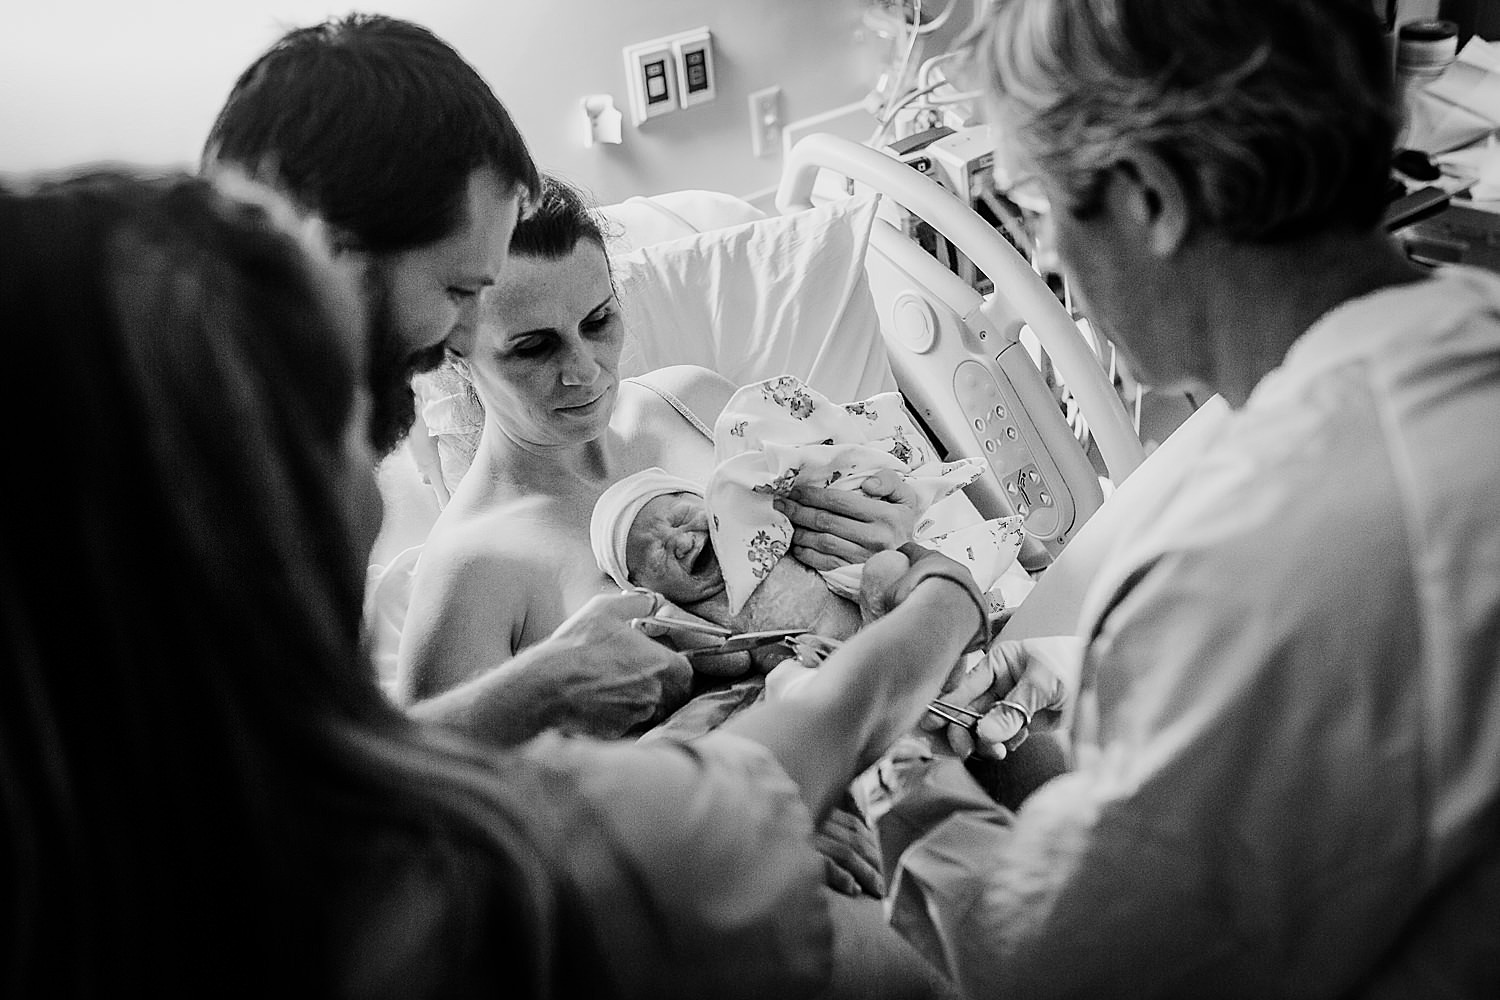 Lancaster_birth_photography14.jpg